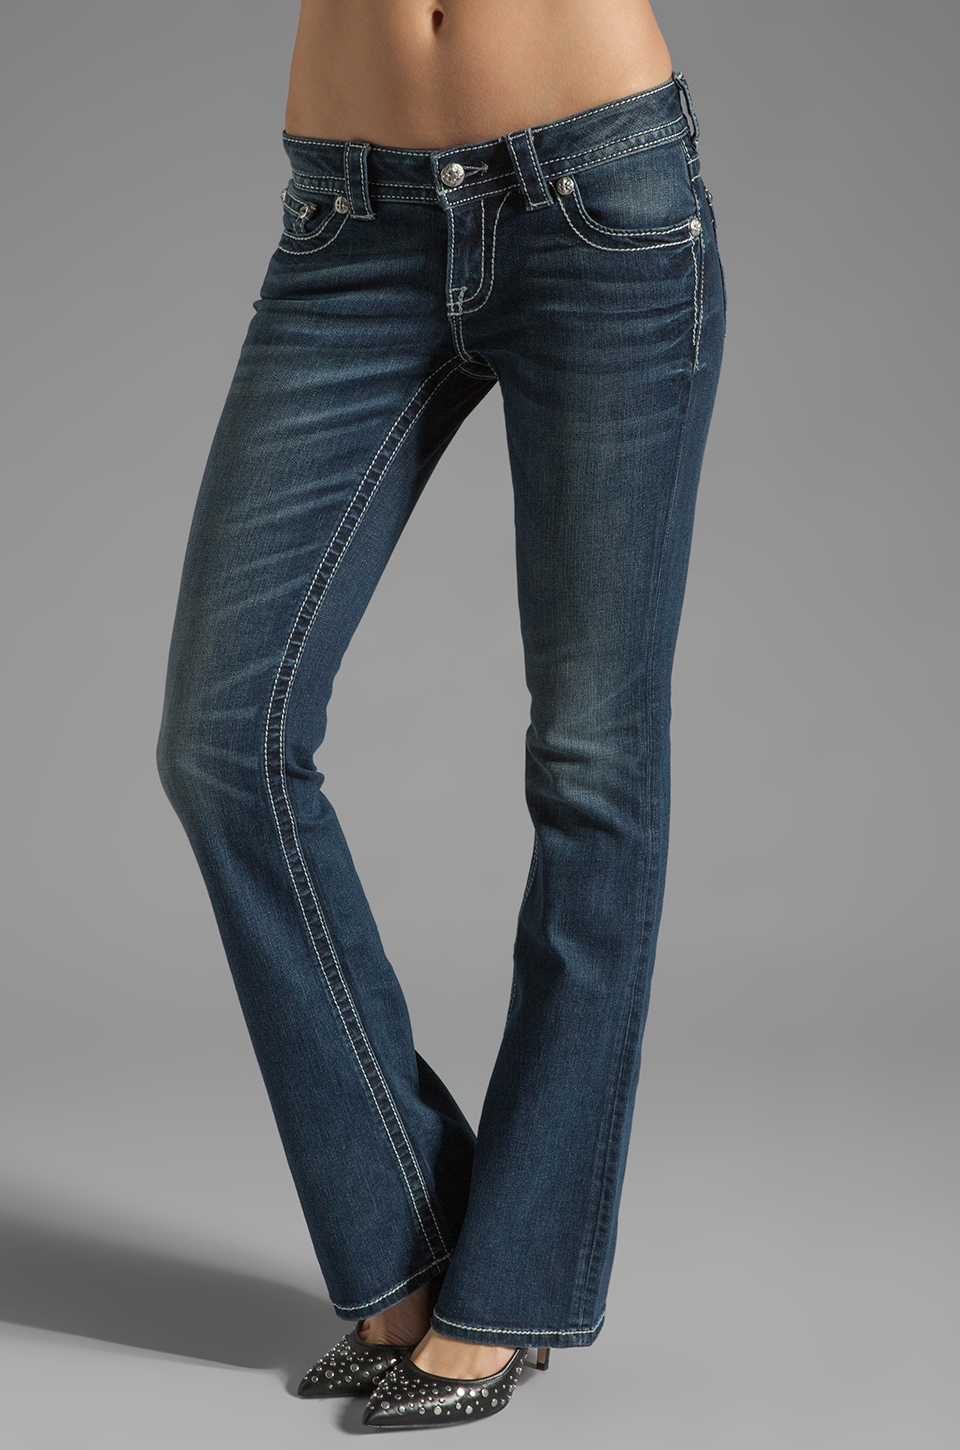 Miss Me Jeans Boot Cut Jean in MK 150